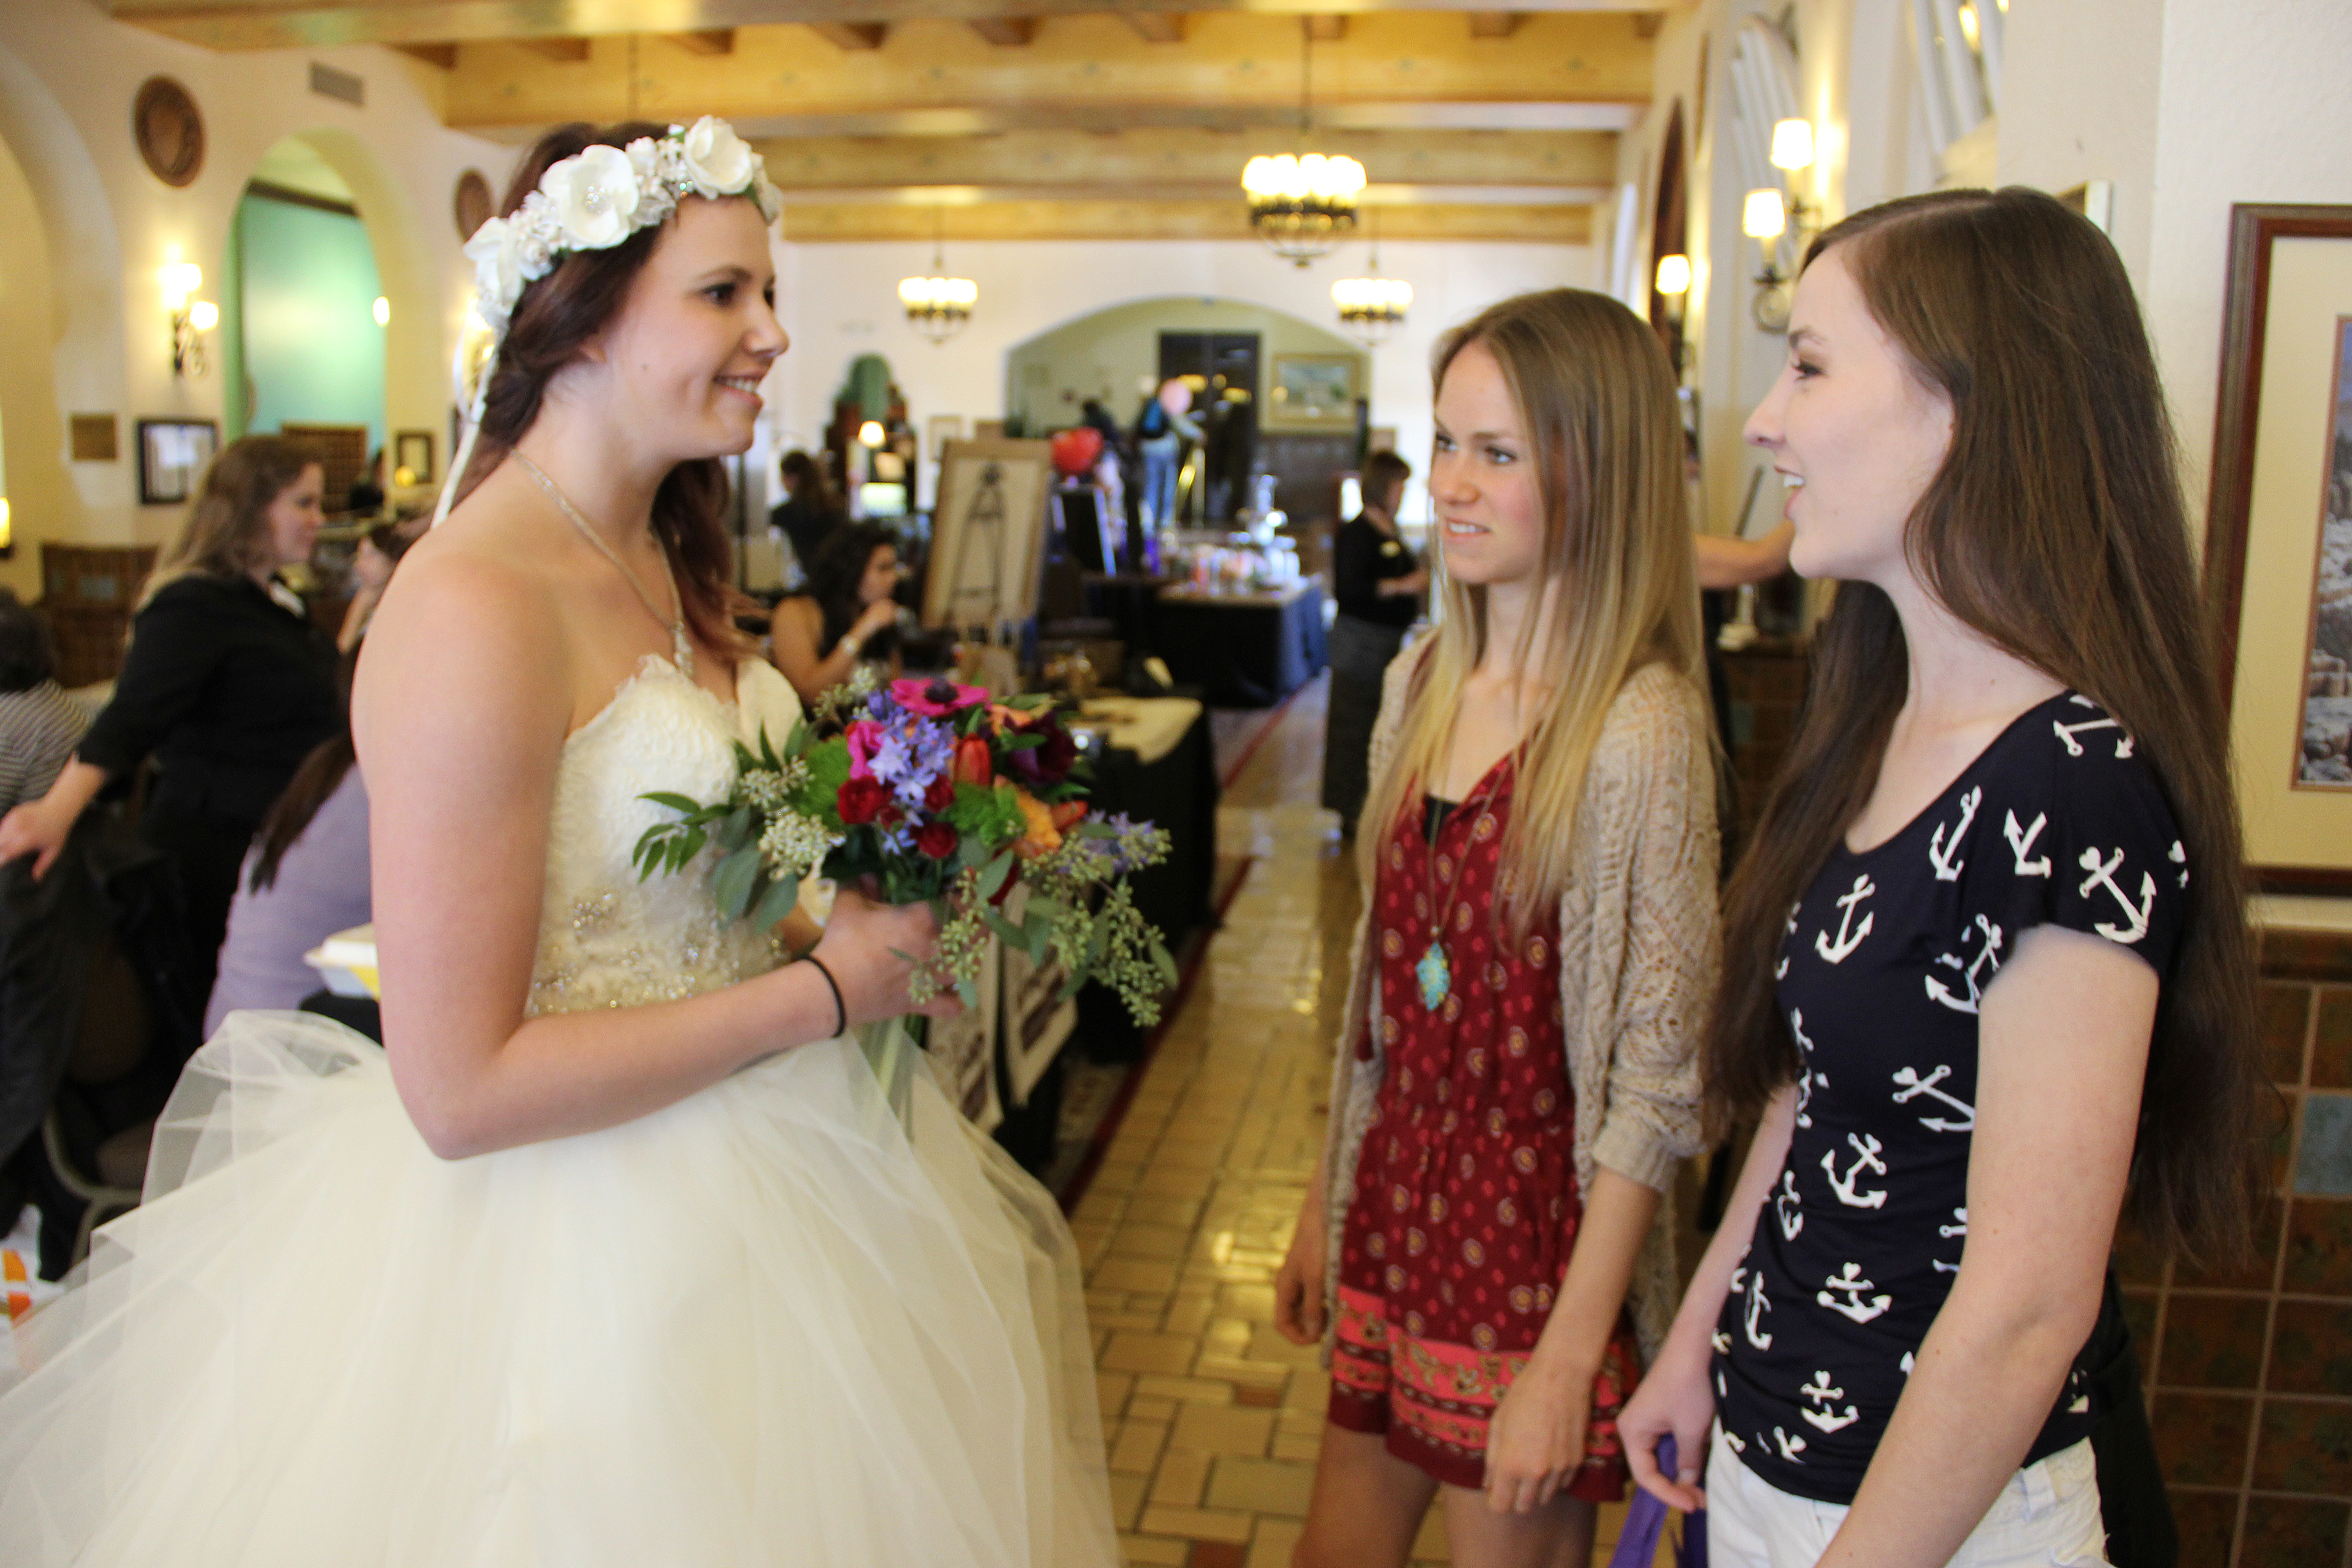 Engaged couples fulfill wedding needs at Prescott bridal expo | The ...